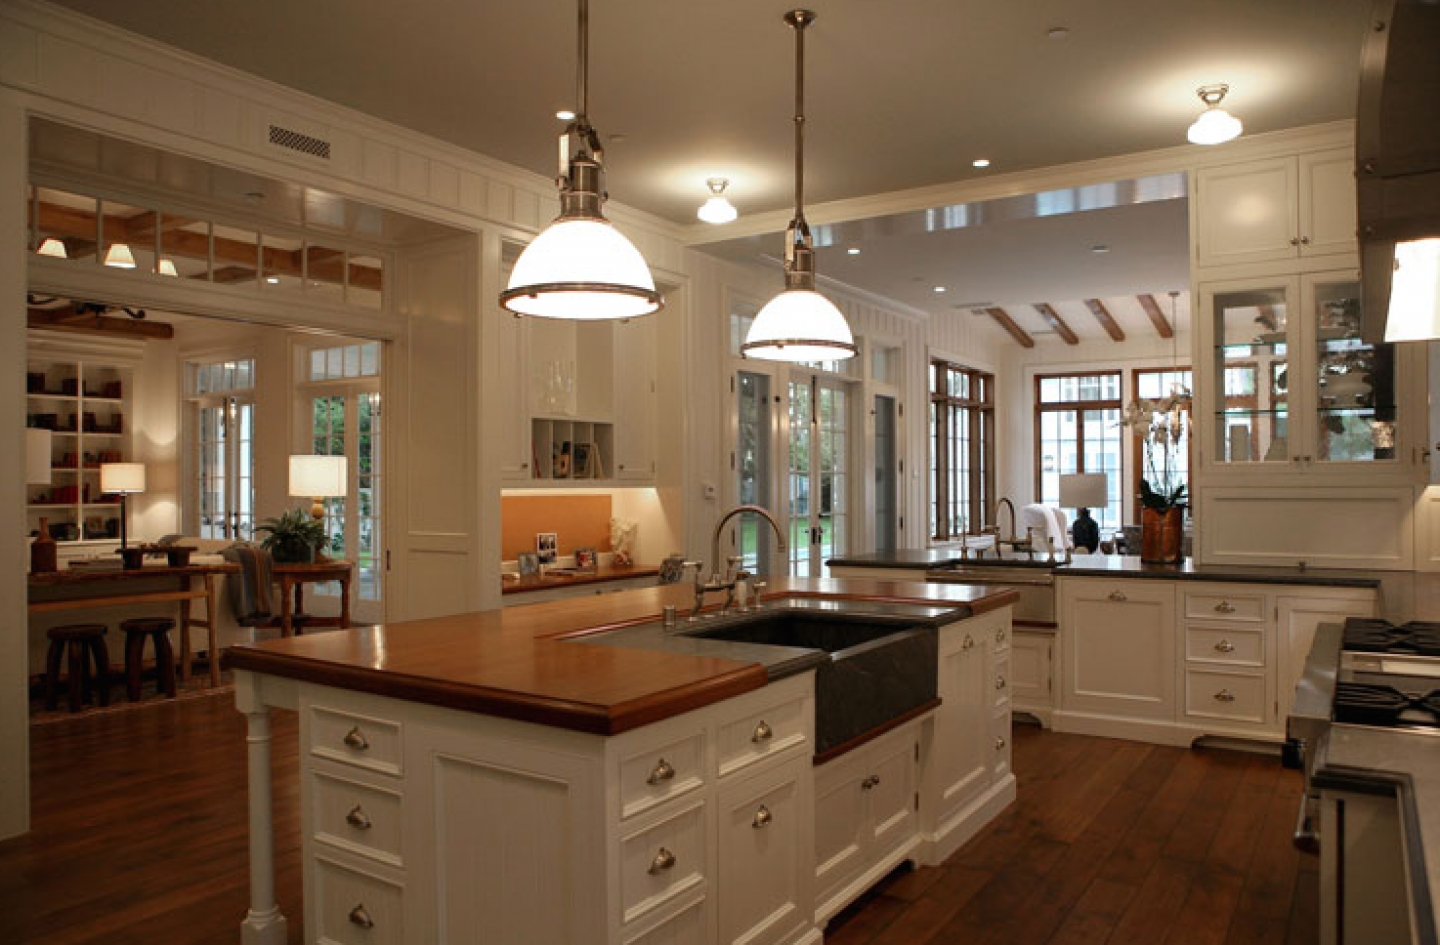 Featured Image of Classic French Kitchen With Modern Nuance